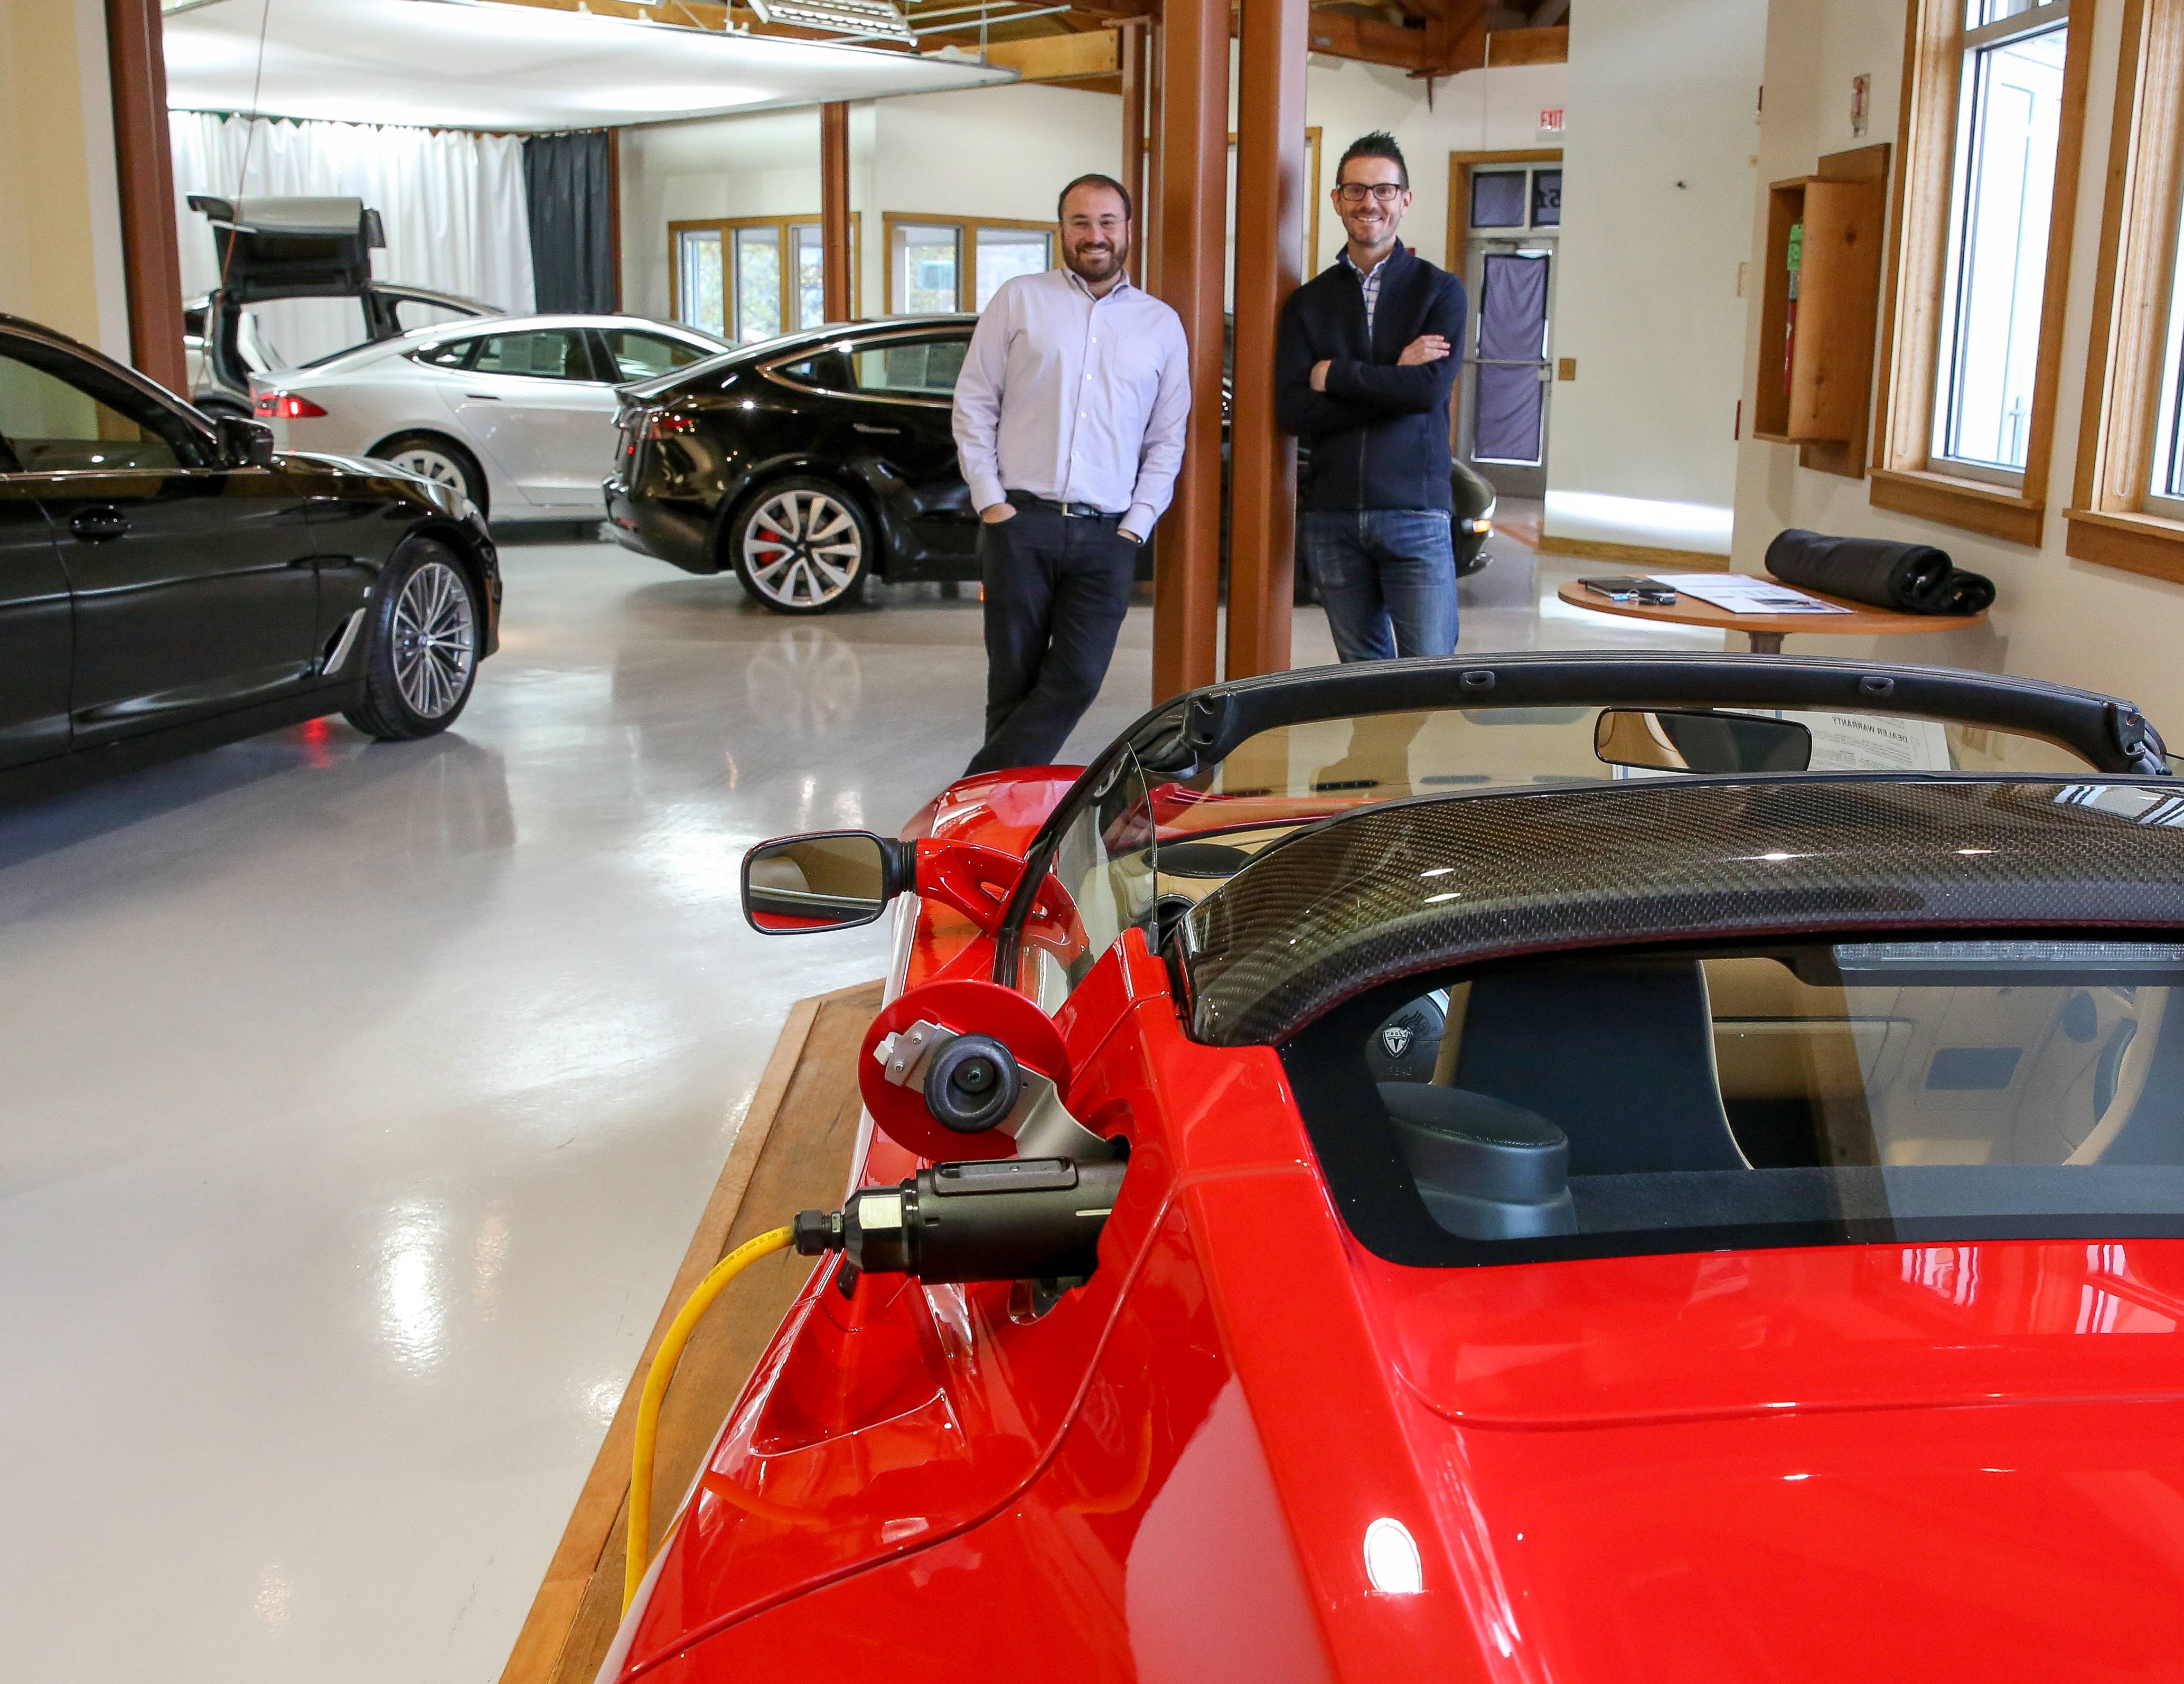 Trip Jacobs and Seneca Giese are co-founders of Current Automotive in Naperville, which exclusively sells used electric vehicles, such as this Tesla Roadster, and plug-in hybrids. The online-focused business has sold cars to 28 states since launching in July.